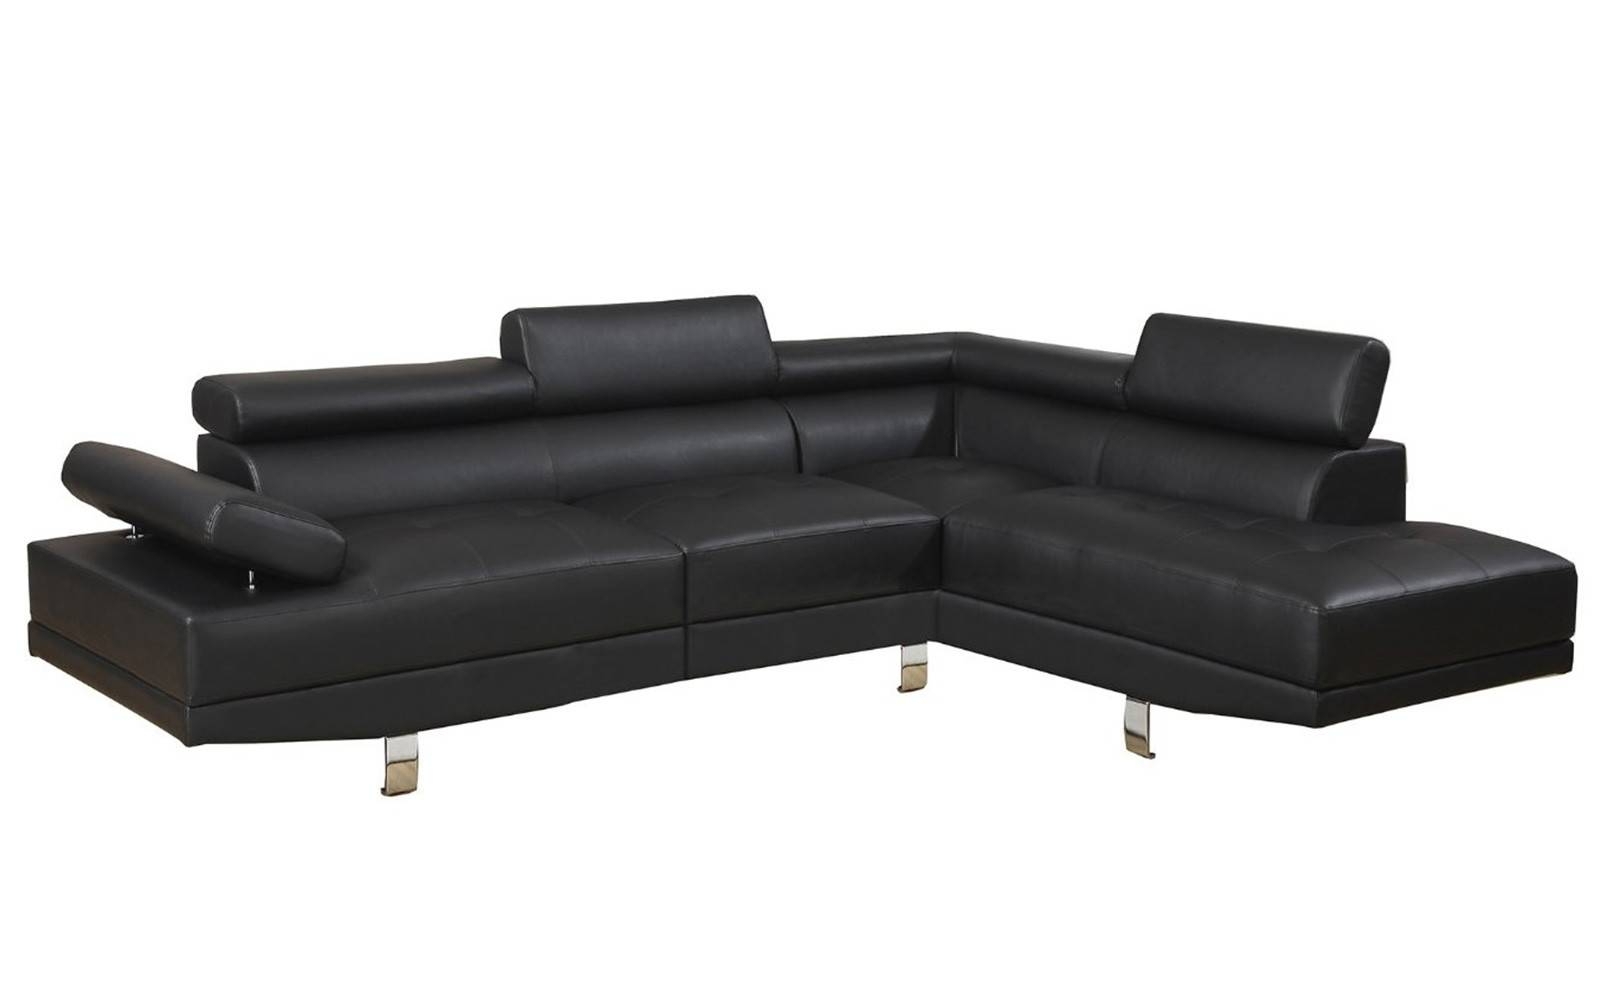 2 Piece Modern Bonded Leather Right Facing Chaise Sectional Sofa Within Sectional Sofa With 2 Chaises (View 4 of 30)